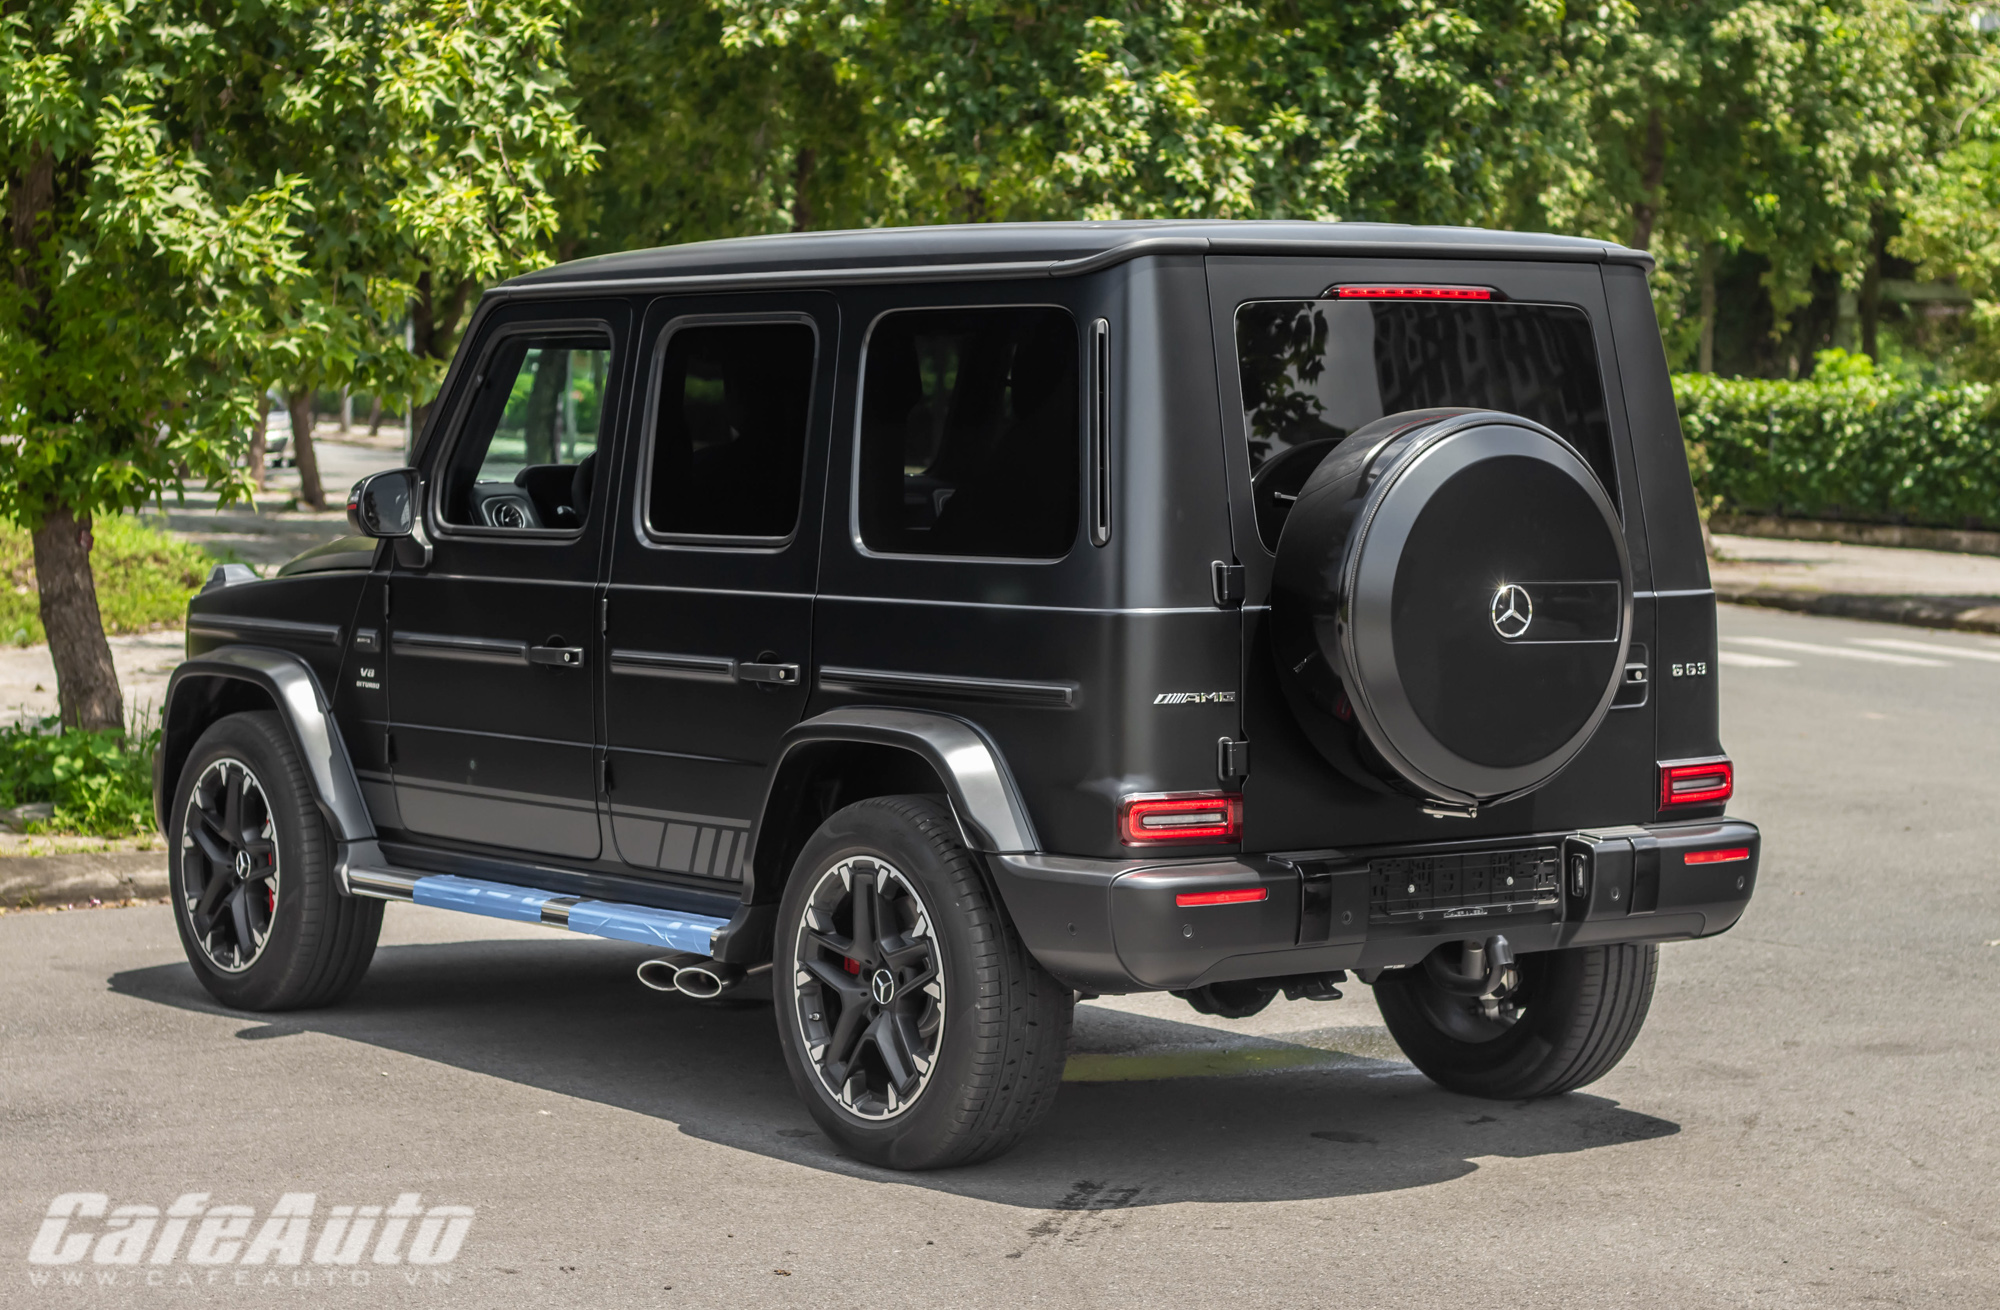 MercedesG63TrailPackage-cafeautovn-23